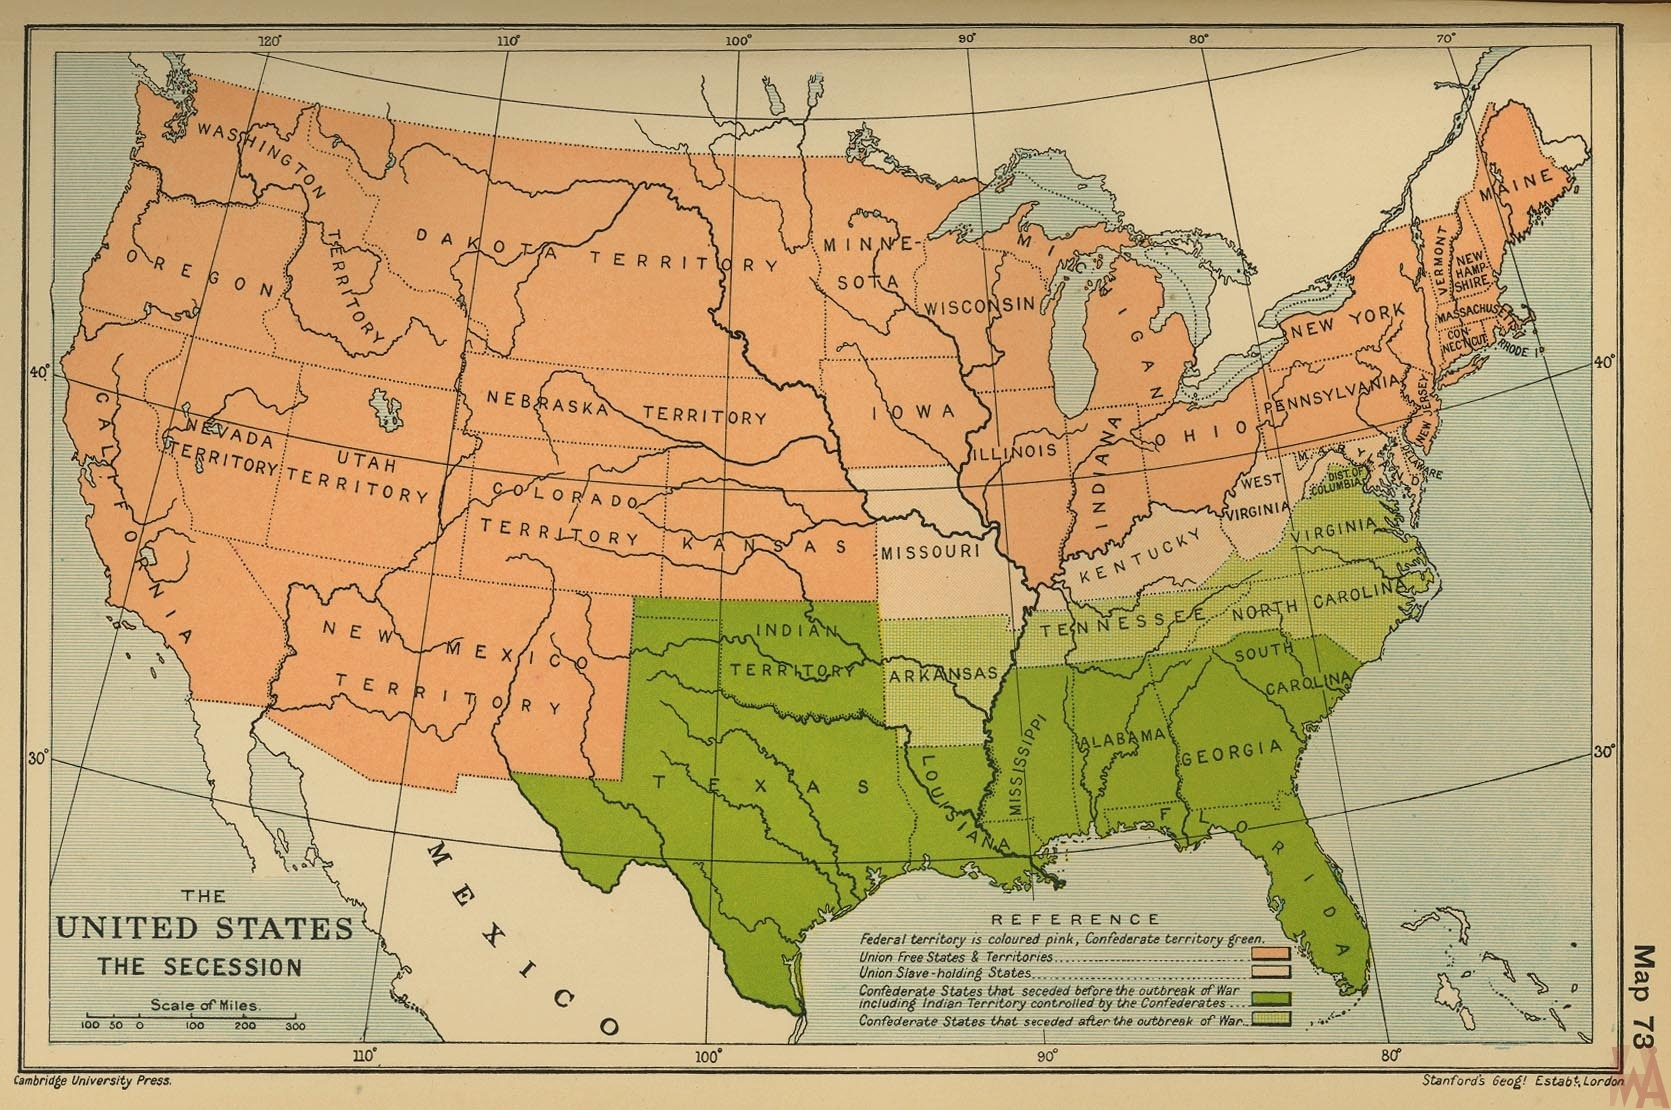 us secession map – Source Cambridge Uni Press 1973